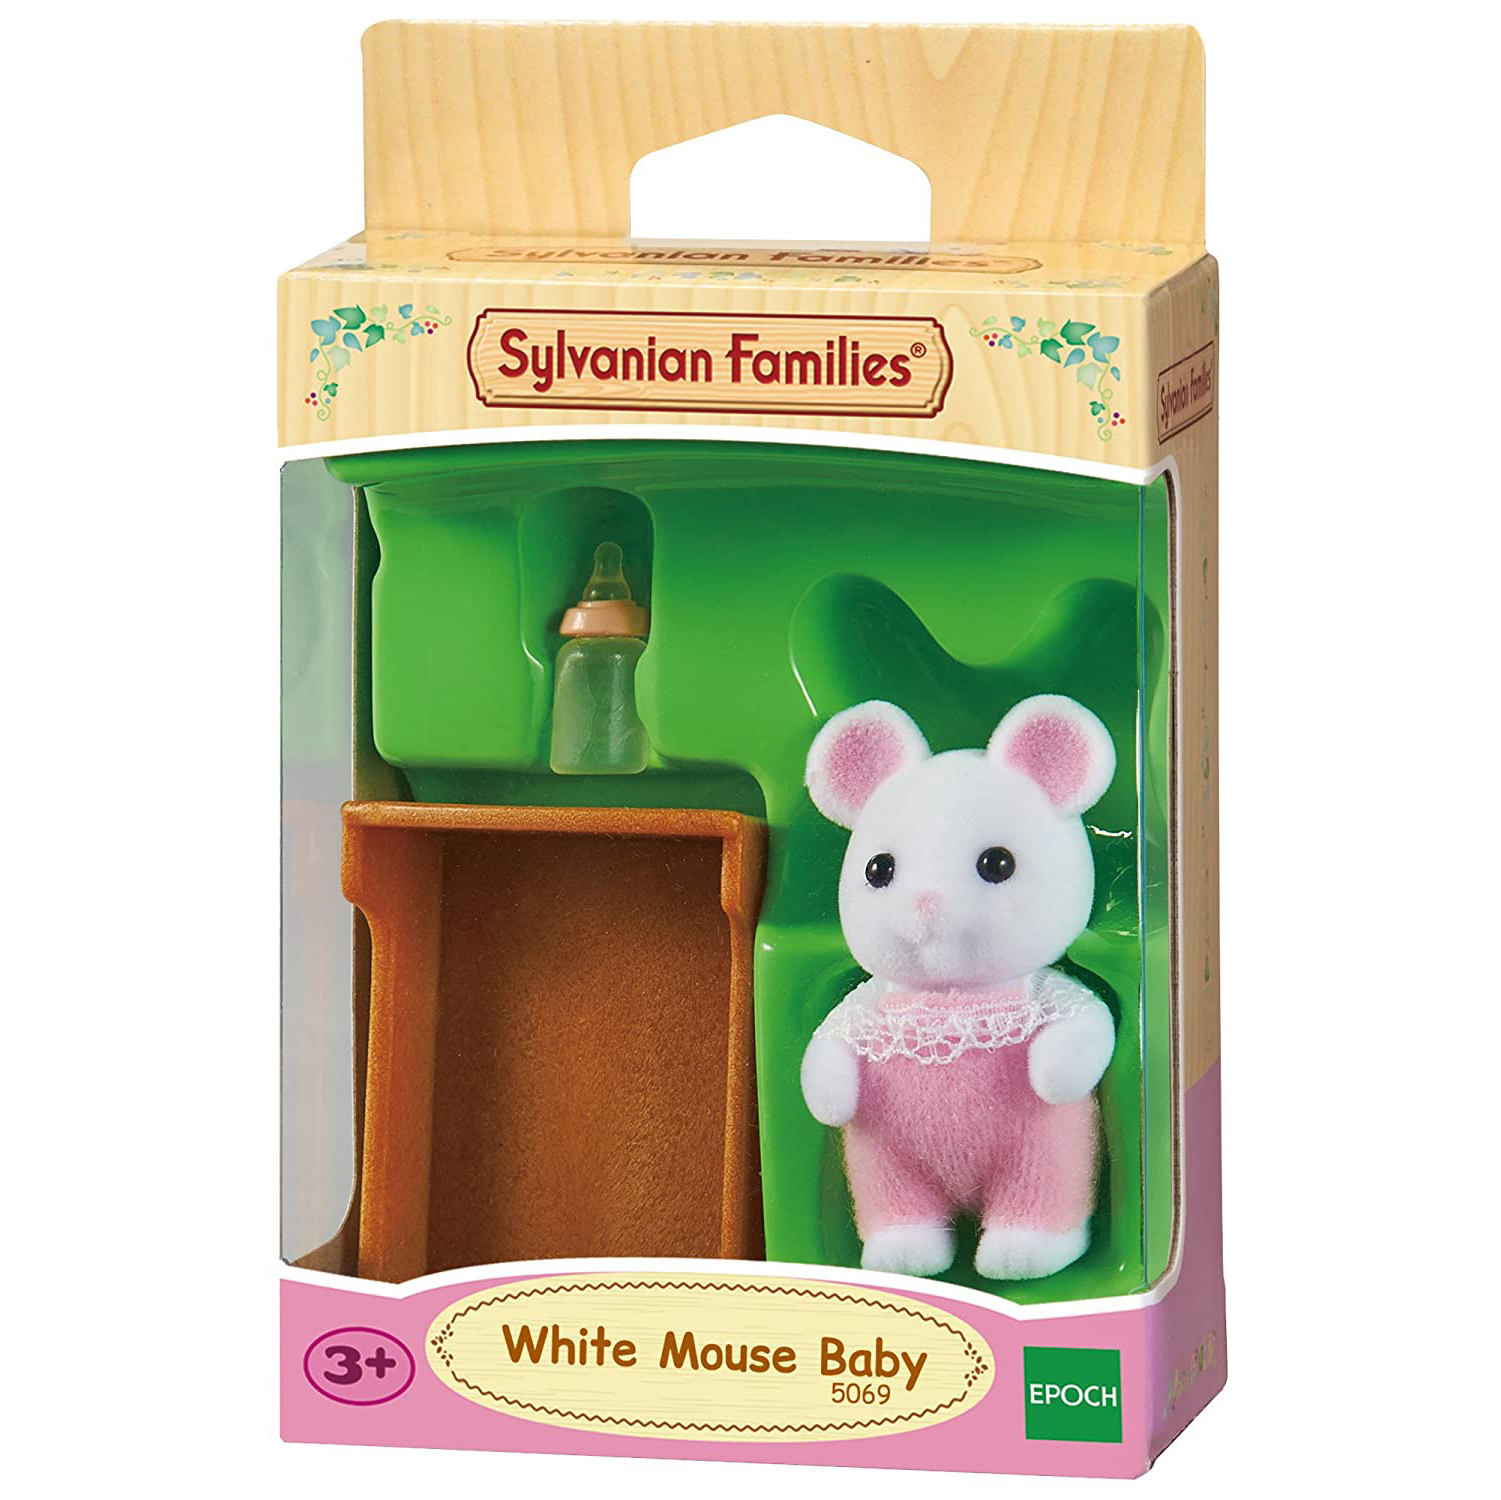 White Mouse Baby